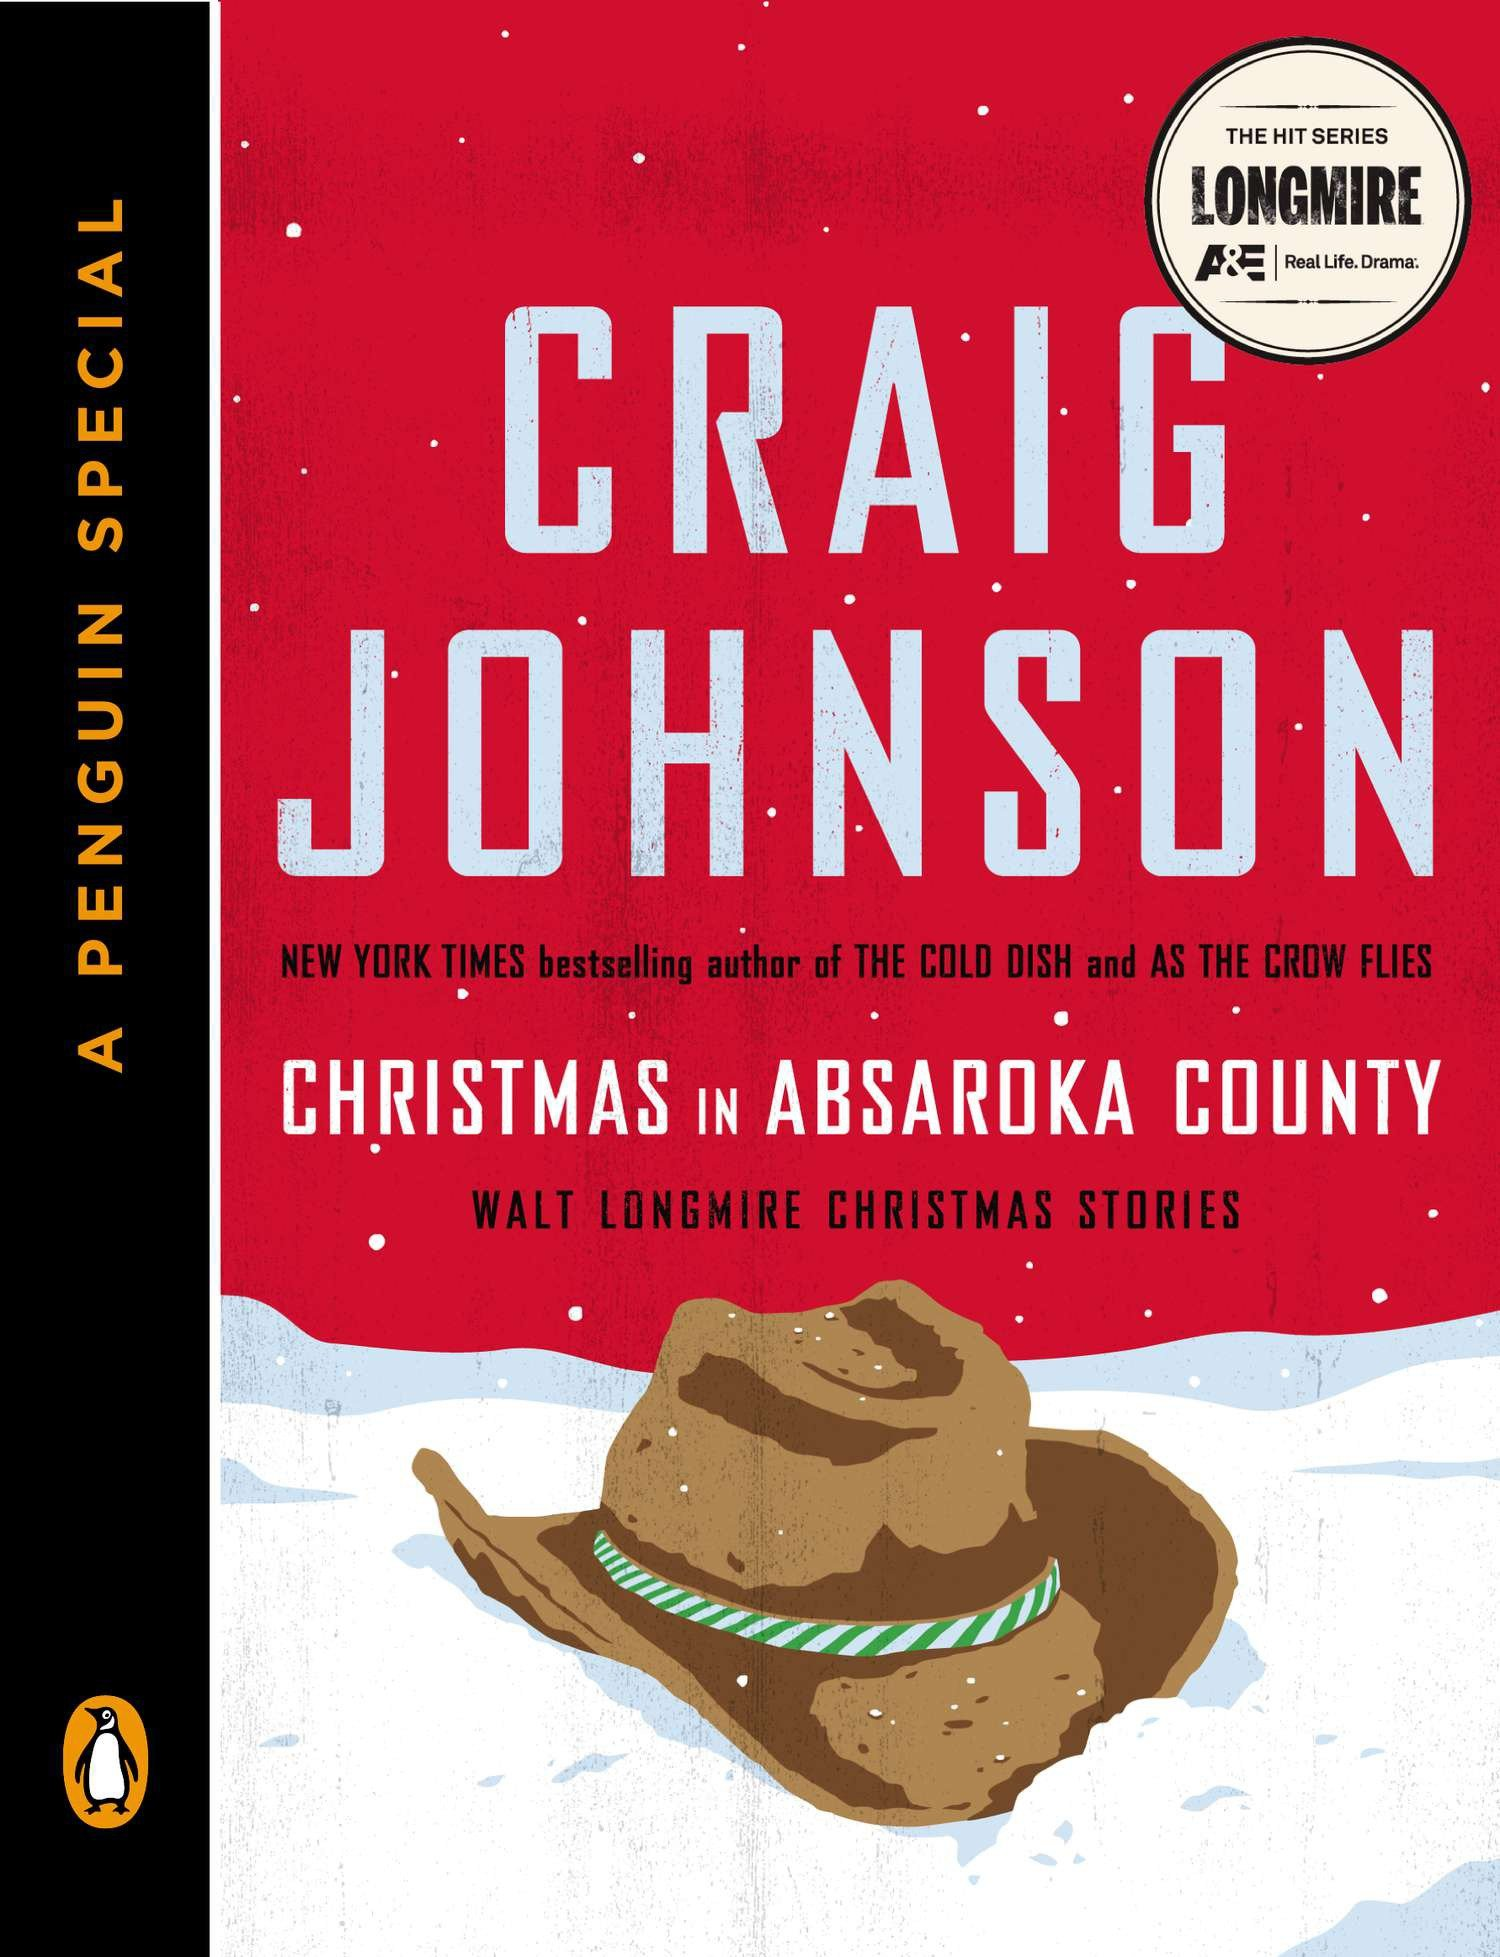 Christmas in Absaroka County Walt Longmire Christmas Stories (A Penguin Special)